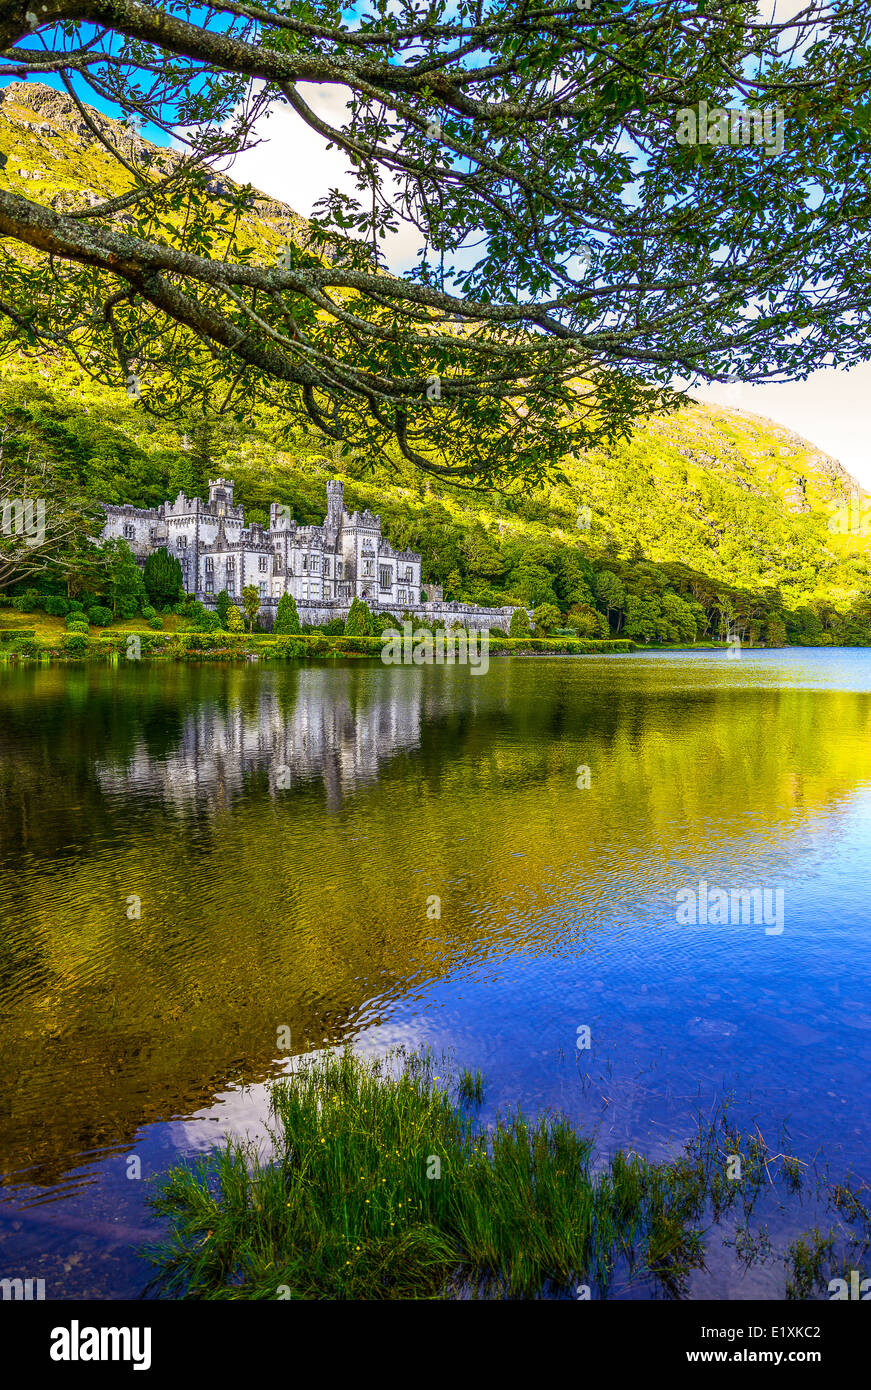 Ireland, Galway county, Connemara area, the Kylemore abbey on the Pollacappul lake - Stock Image